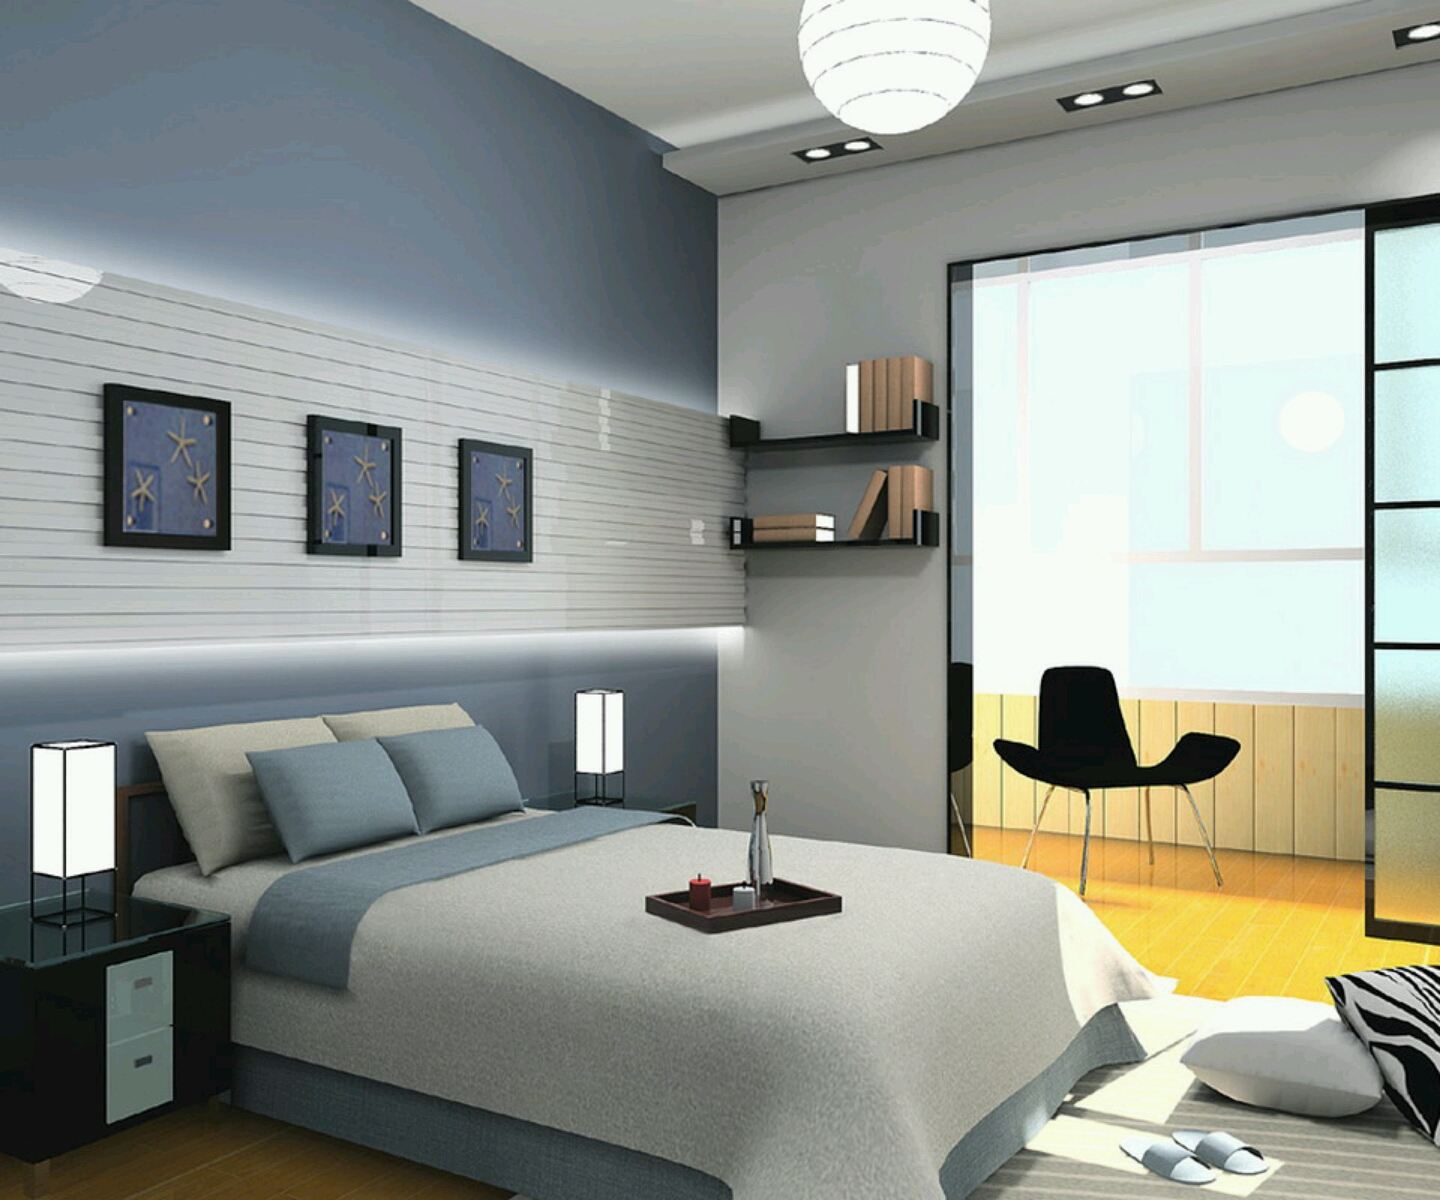 New House Room Designs on house room colors, house room designer, house room animation, house room names, house room painting, house room clip art, house room dimensions, house room games, house architectural design, house room sizes, house living room ideas, house concepts, house bar design ideas, house interior decoration, house room shapes, house stairs design, house interior living room, house dining room, house room backgrounds, house room planning,